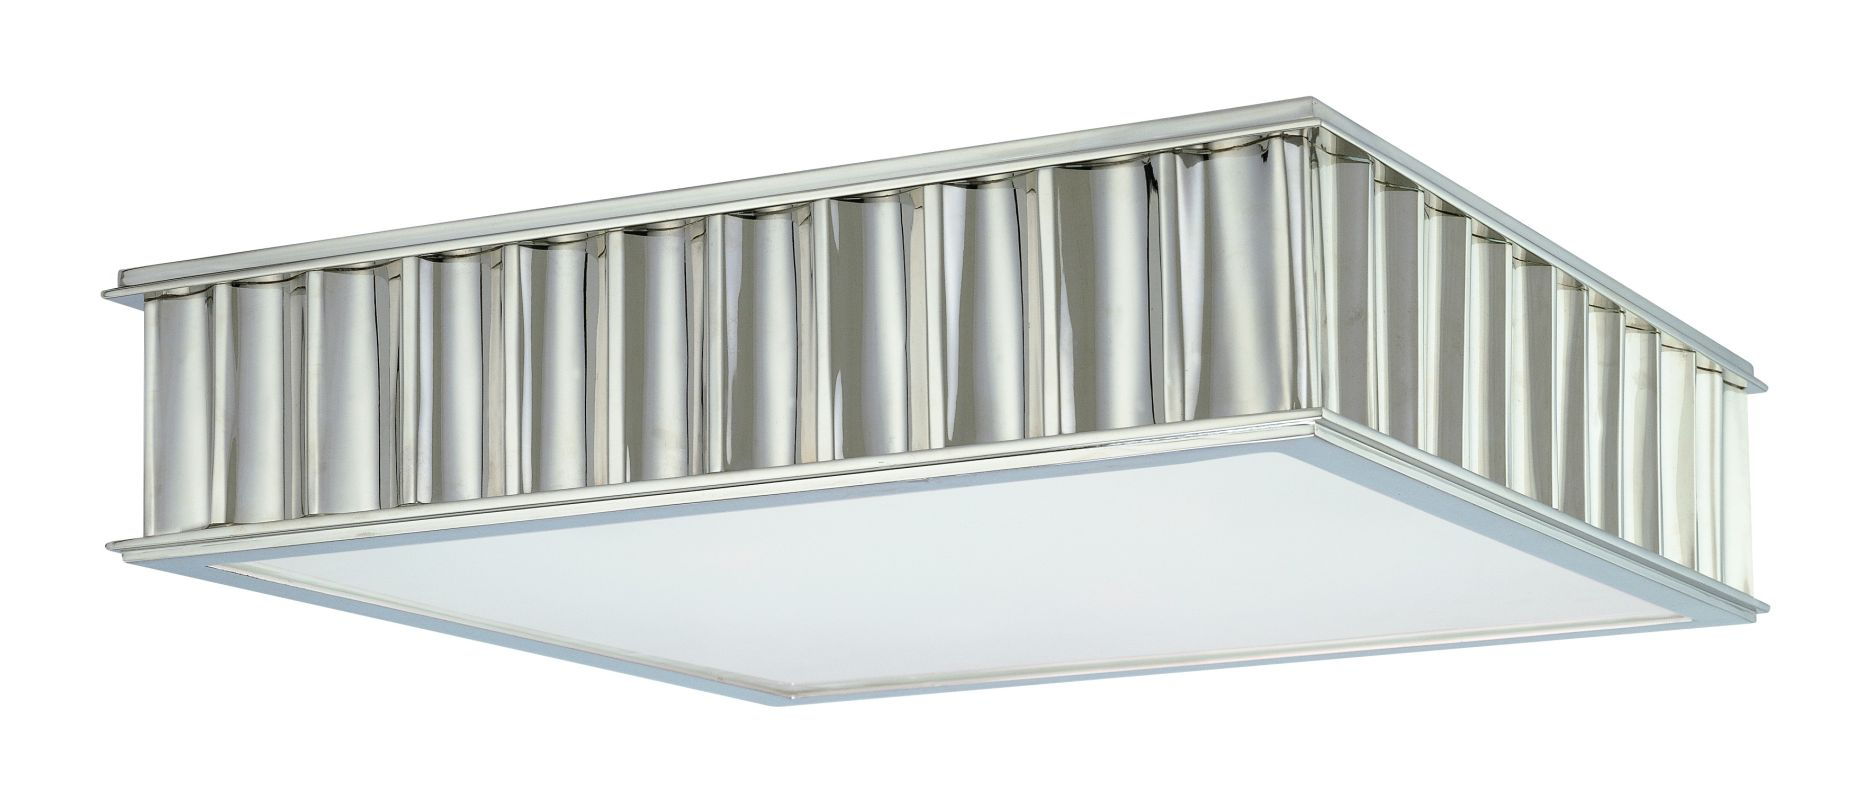 Hudson Valley Lighting 932 Three Light Flushmount Ceiling Fixture from